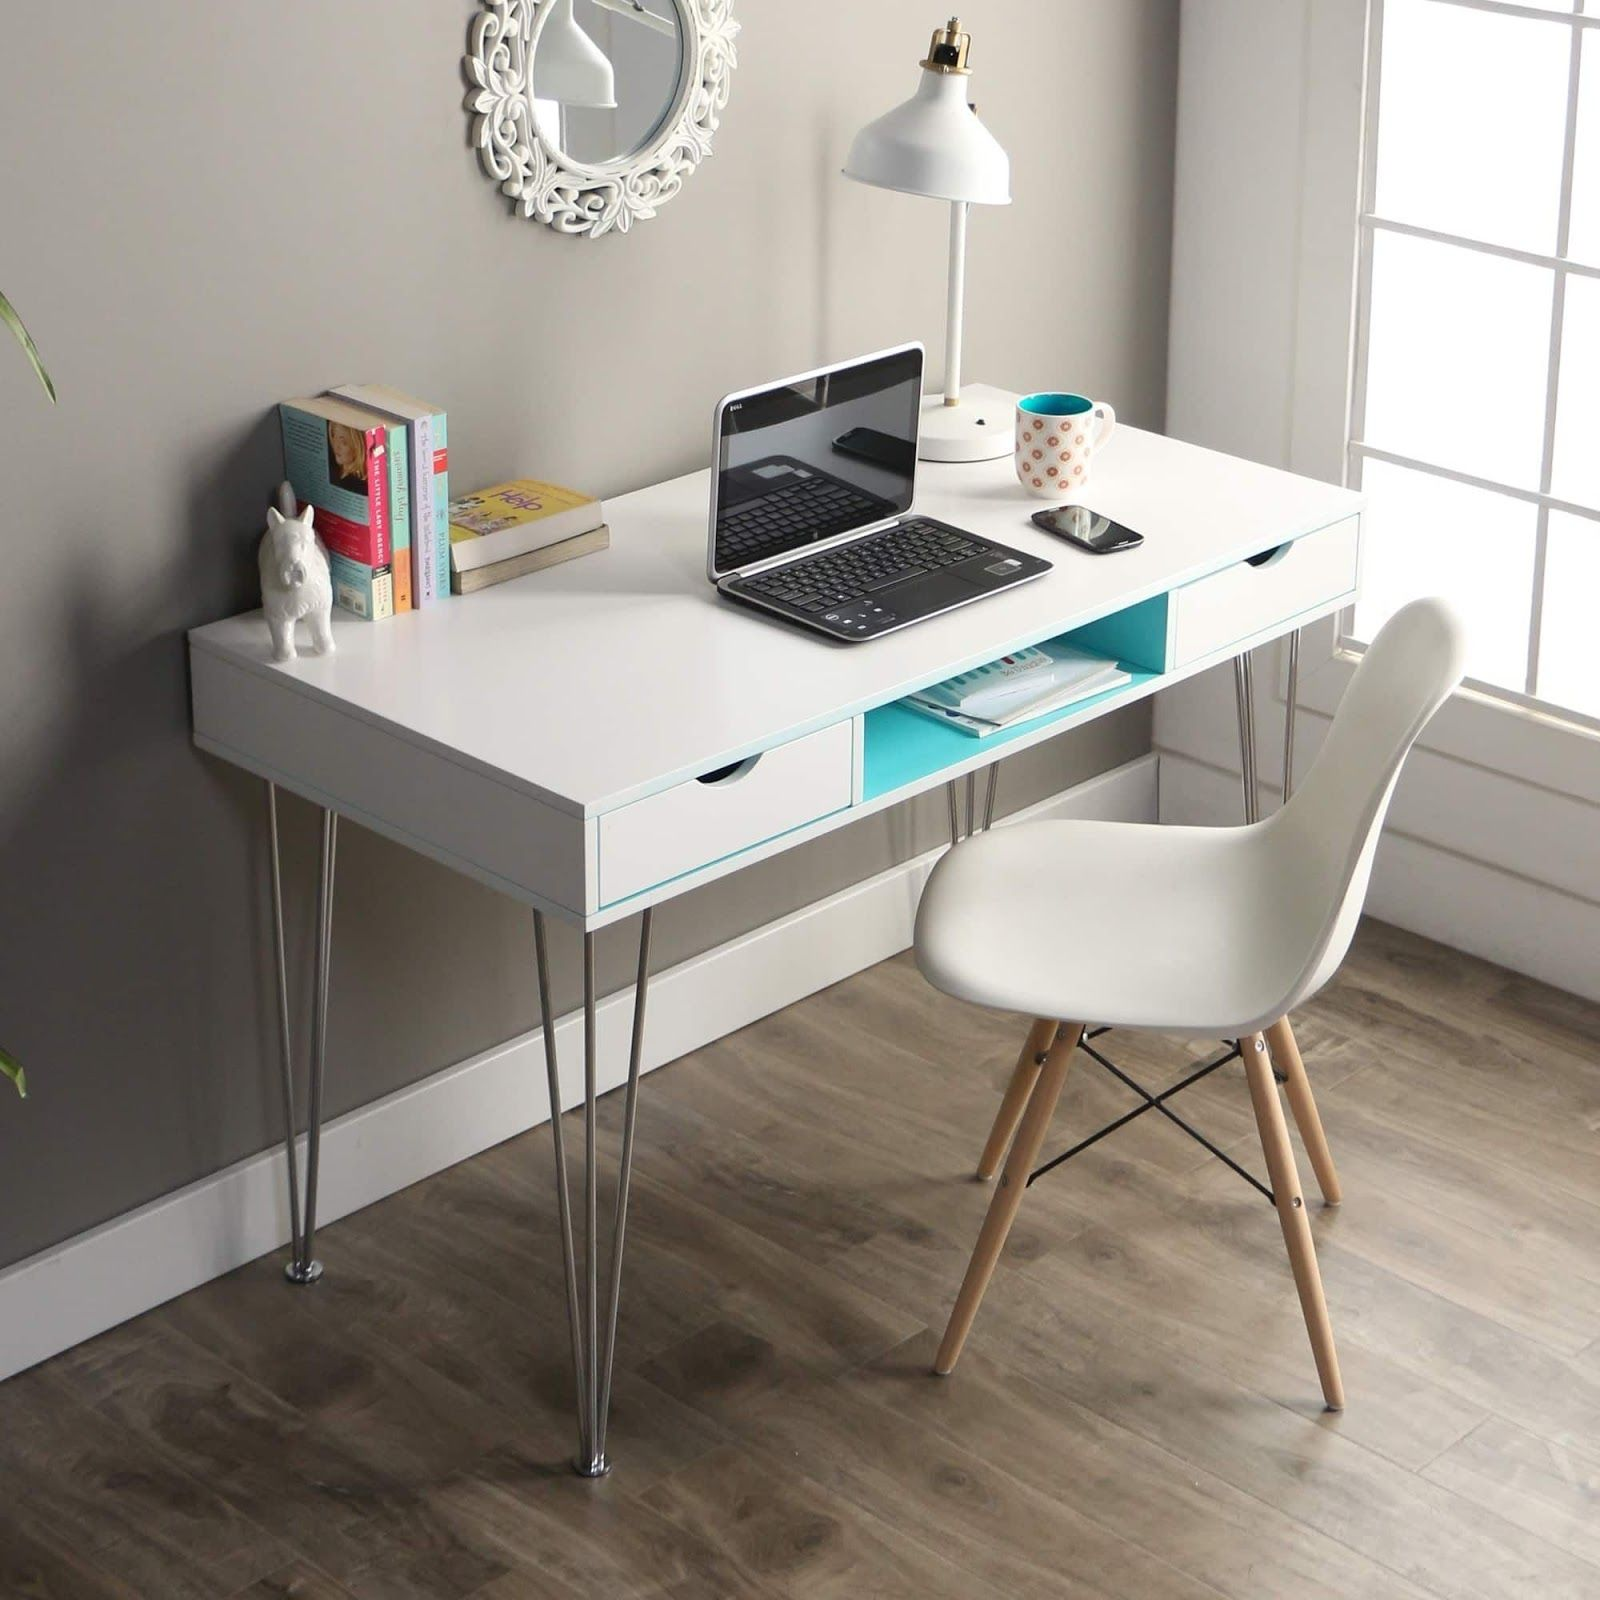 20 Jawdroppingly Cheap Study Desk And Table Ideas